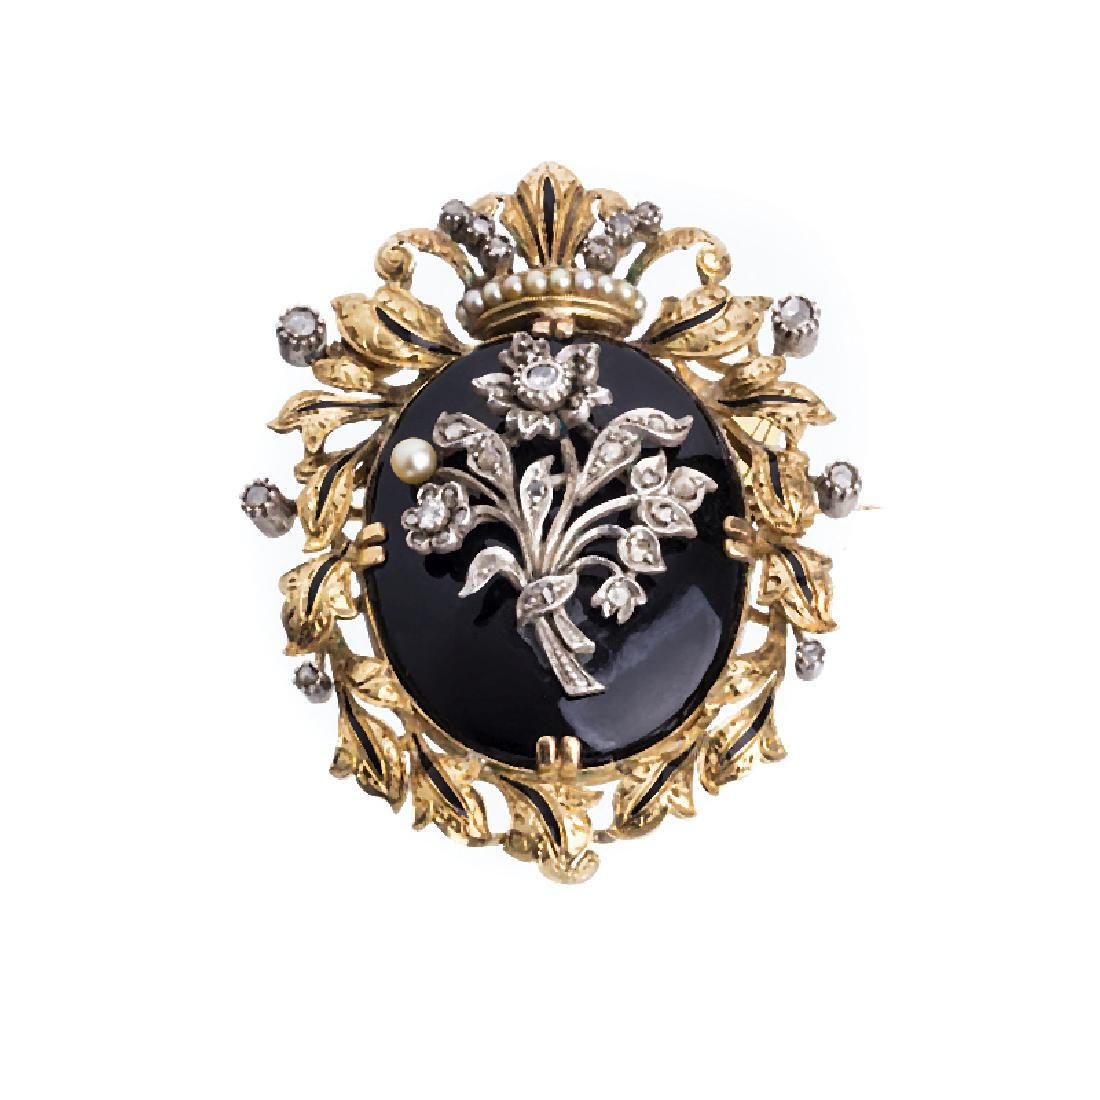 Gold and silver brooch and pendant with diamonds and